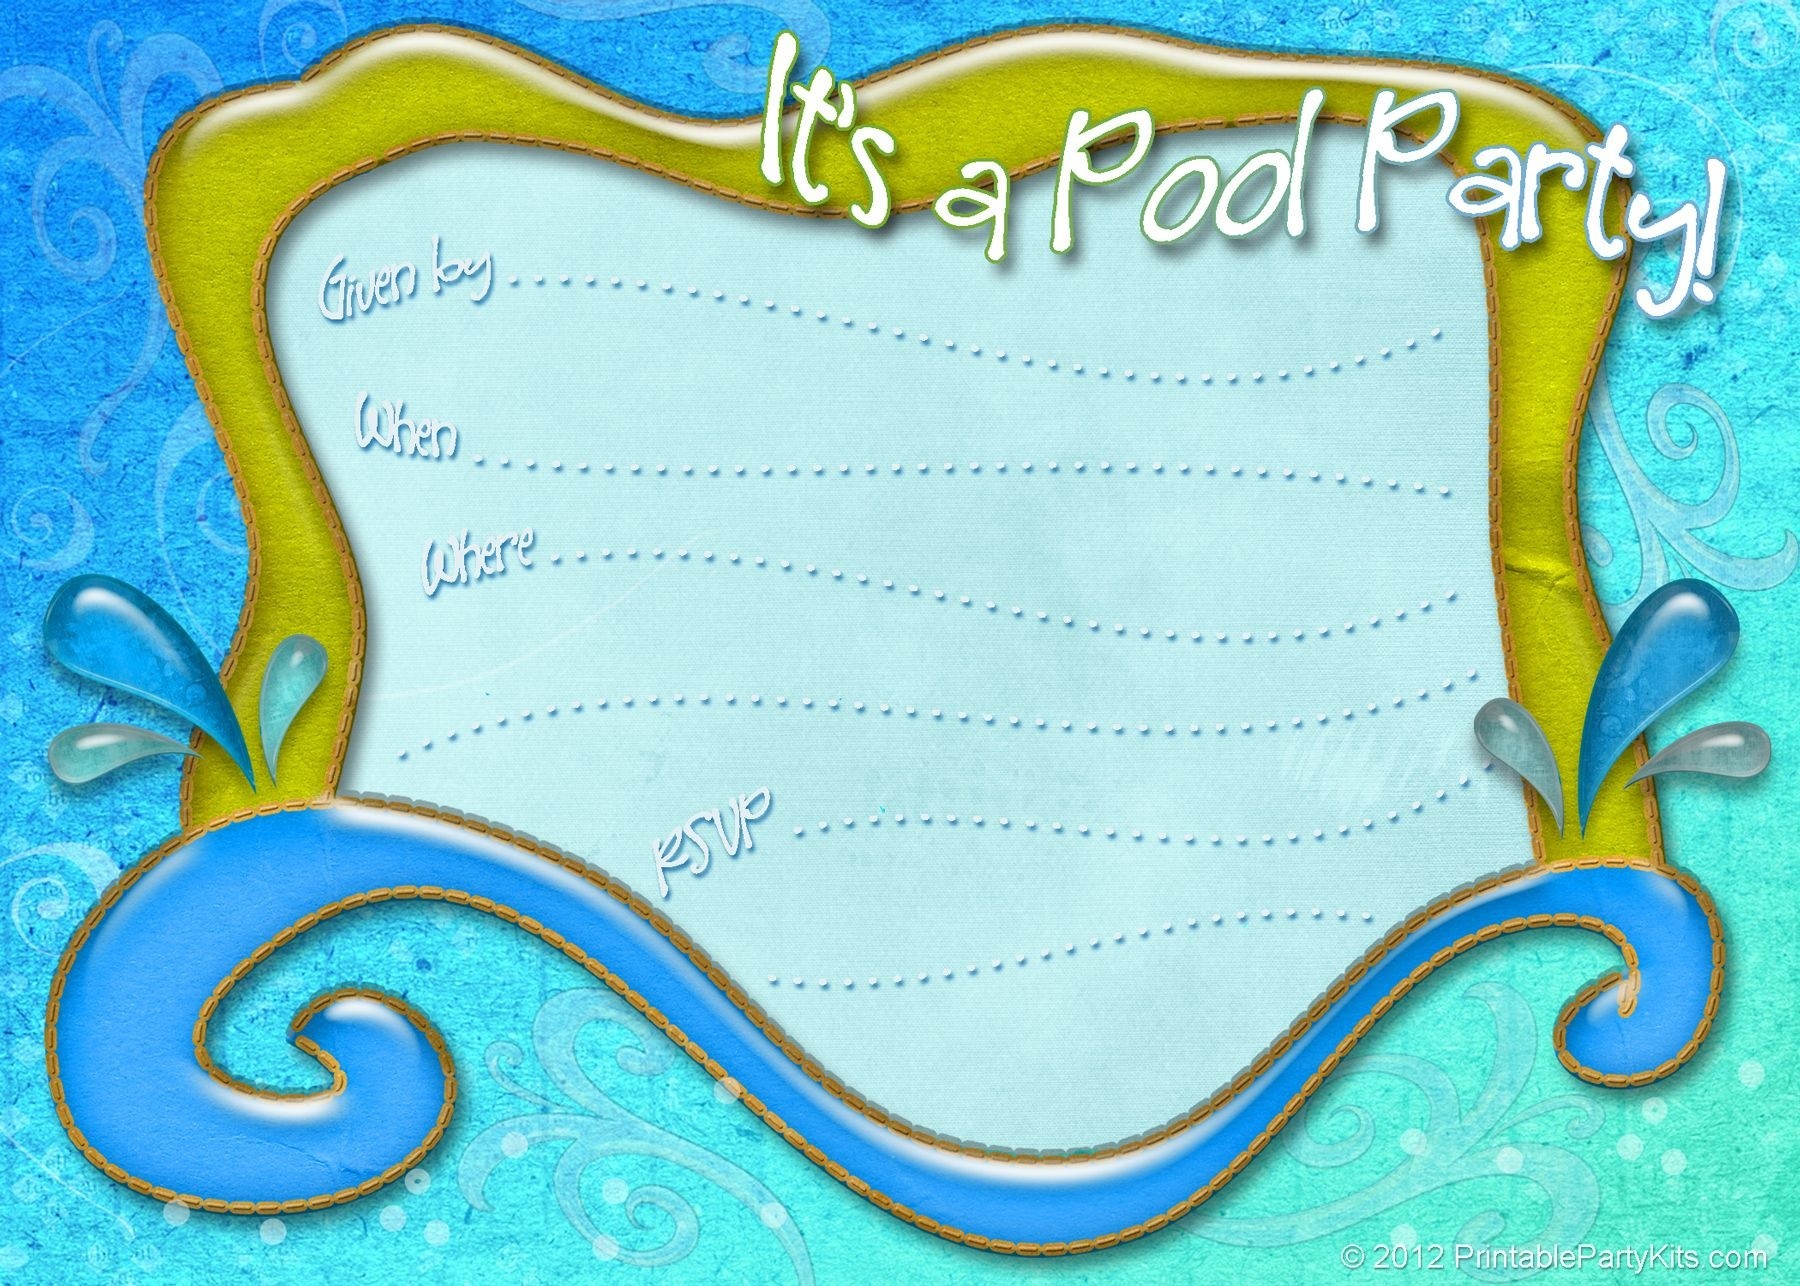 Free Printable Pool Party Invitations Templates - Tutlin.psstech.co - Pool Party Flyers Free Printable